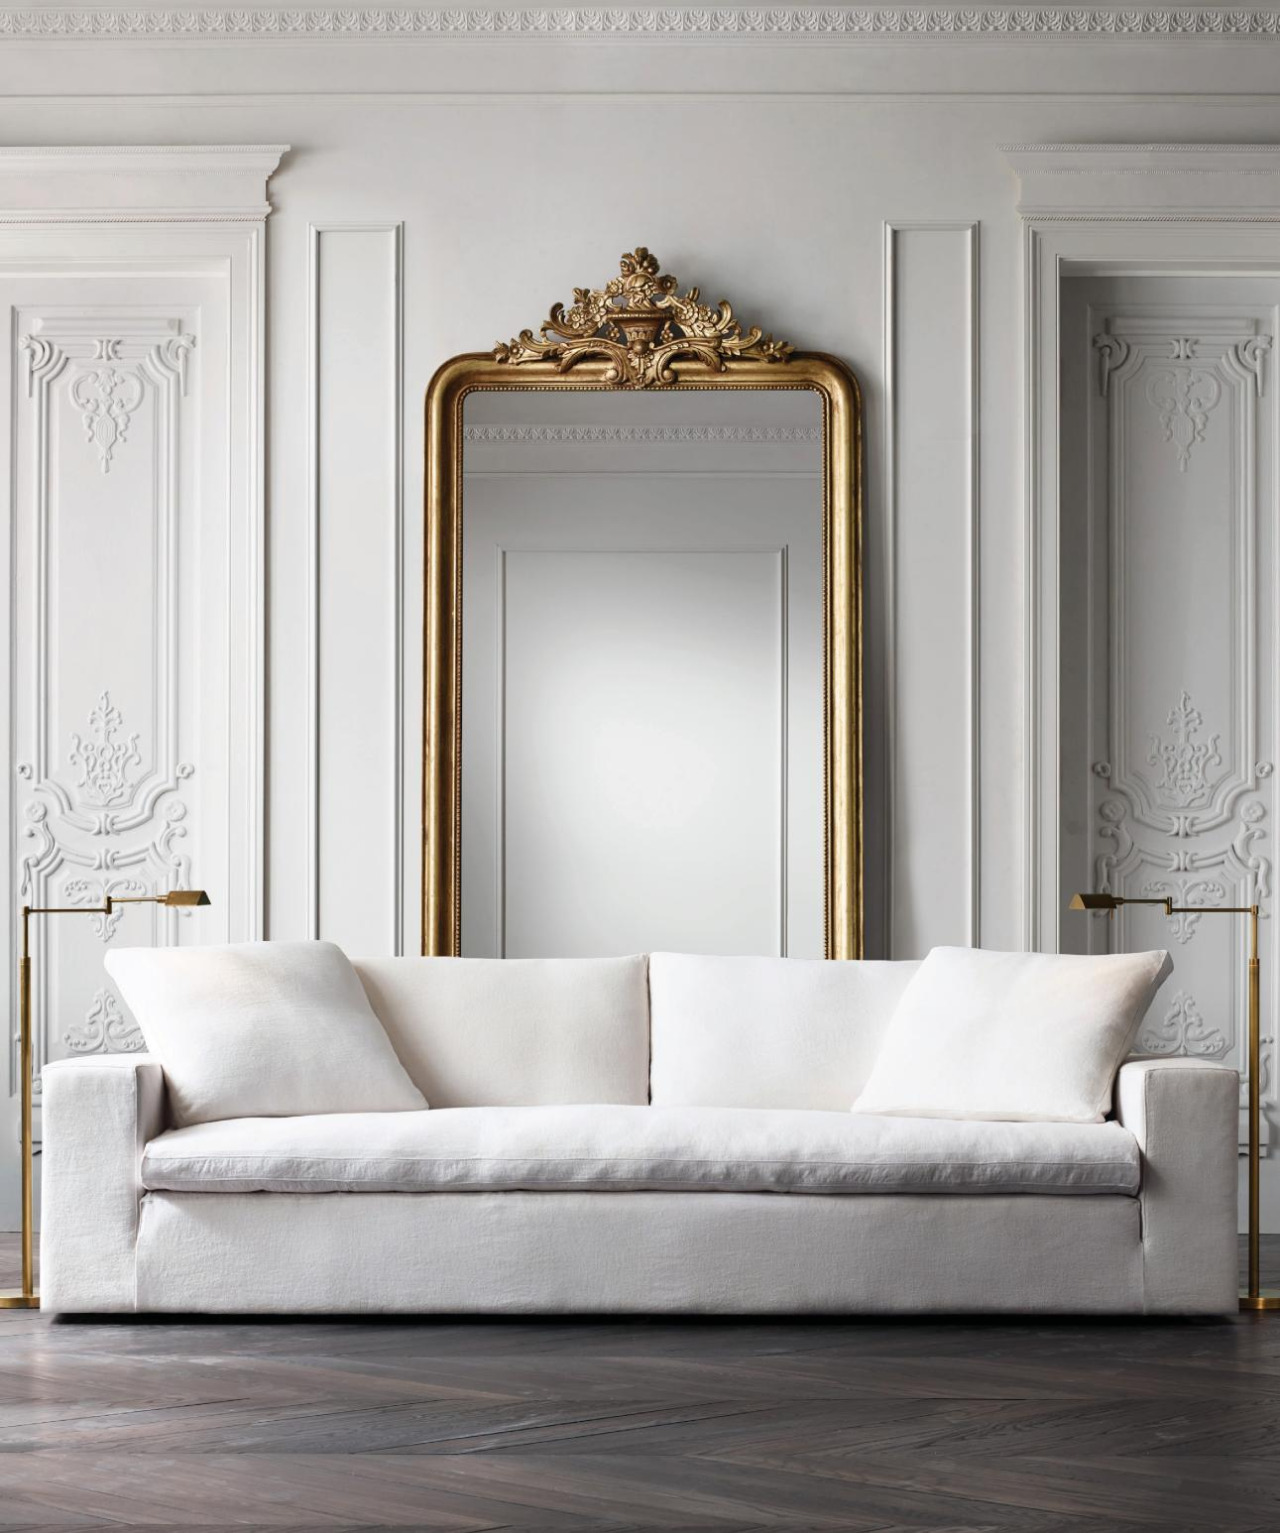 design stunning living room stunning wall mirror designs for your living room decor design - Designs For Room Walls